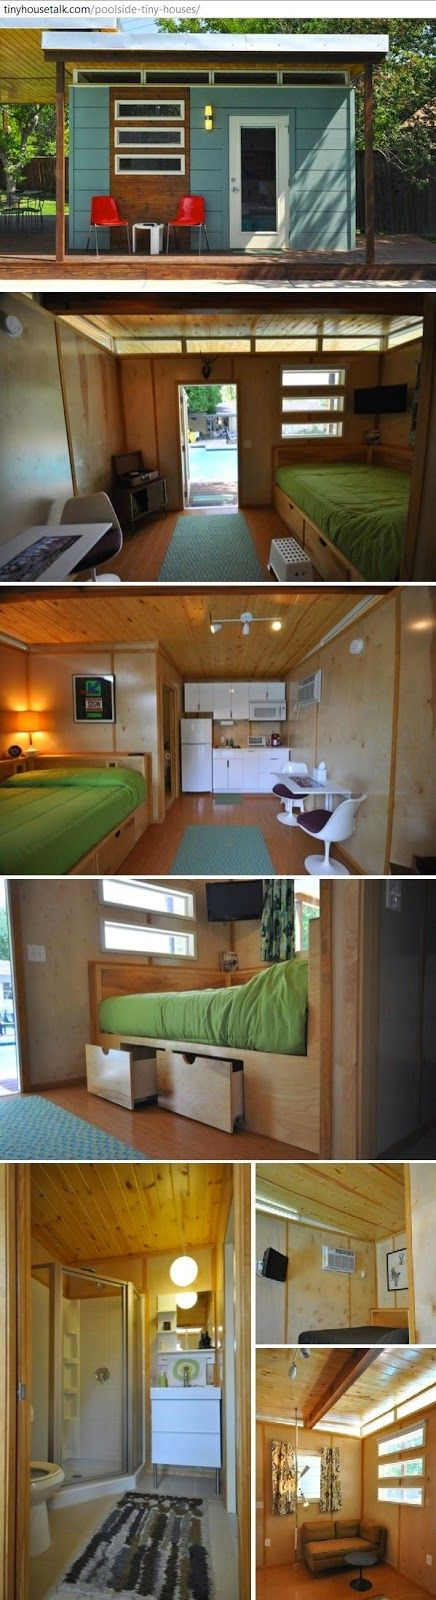 Tiny House And Small Space Living  -   #tinyhouse